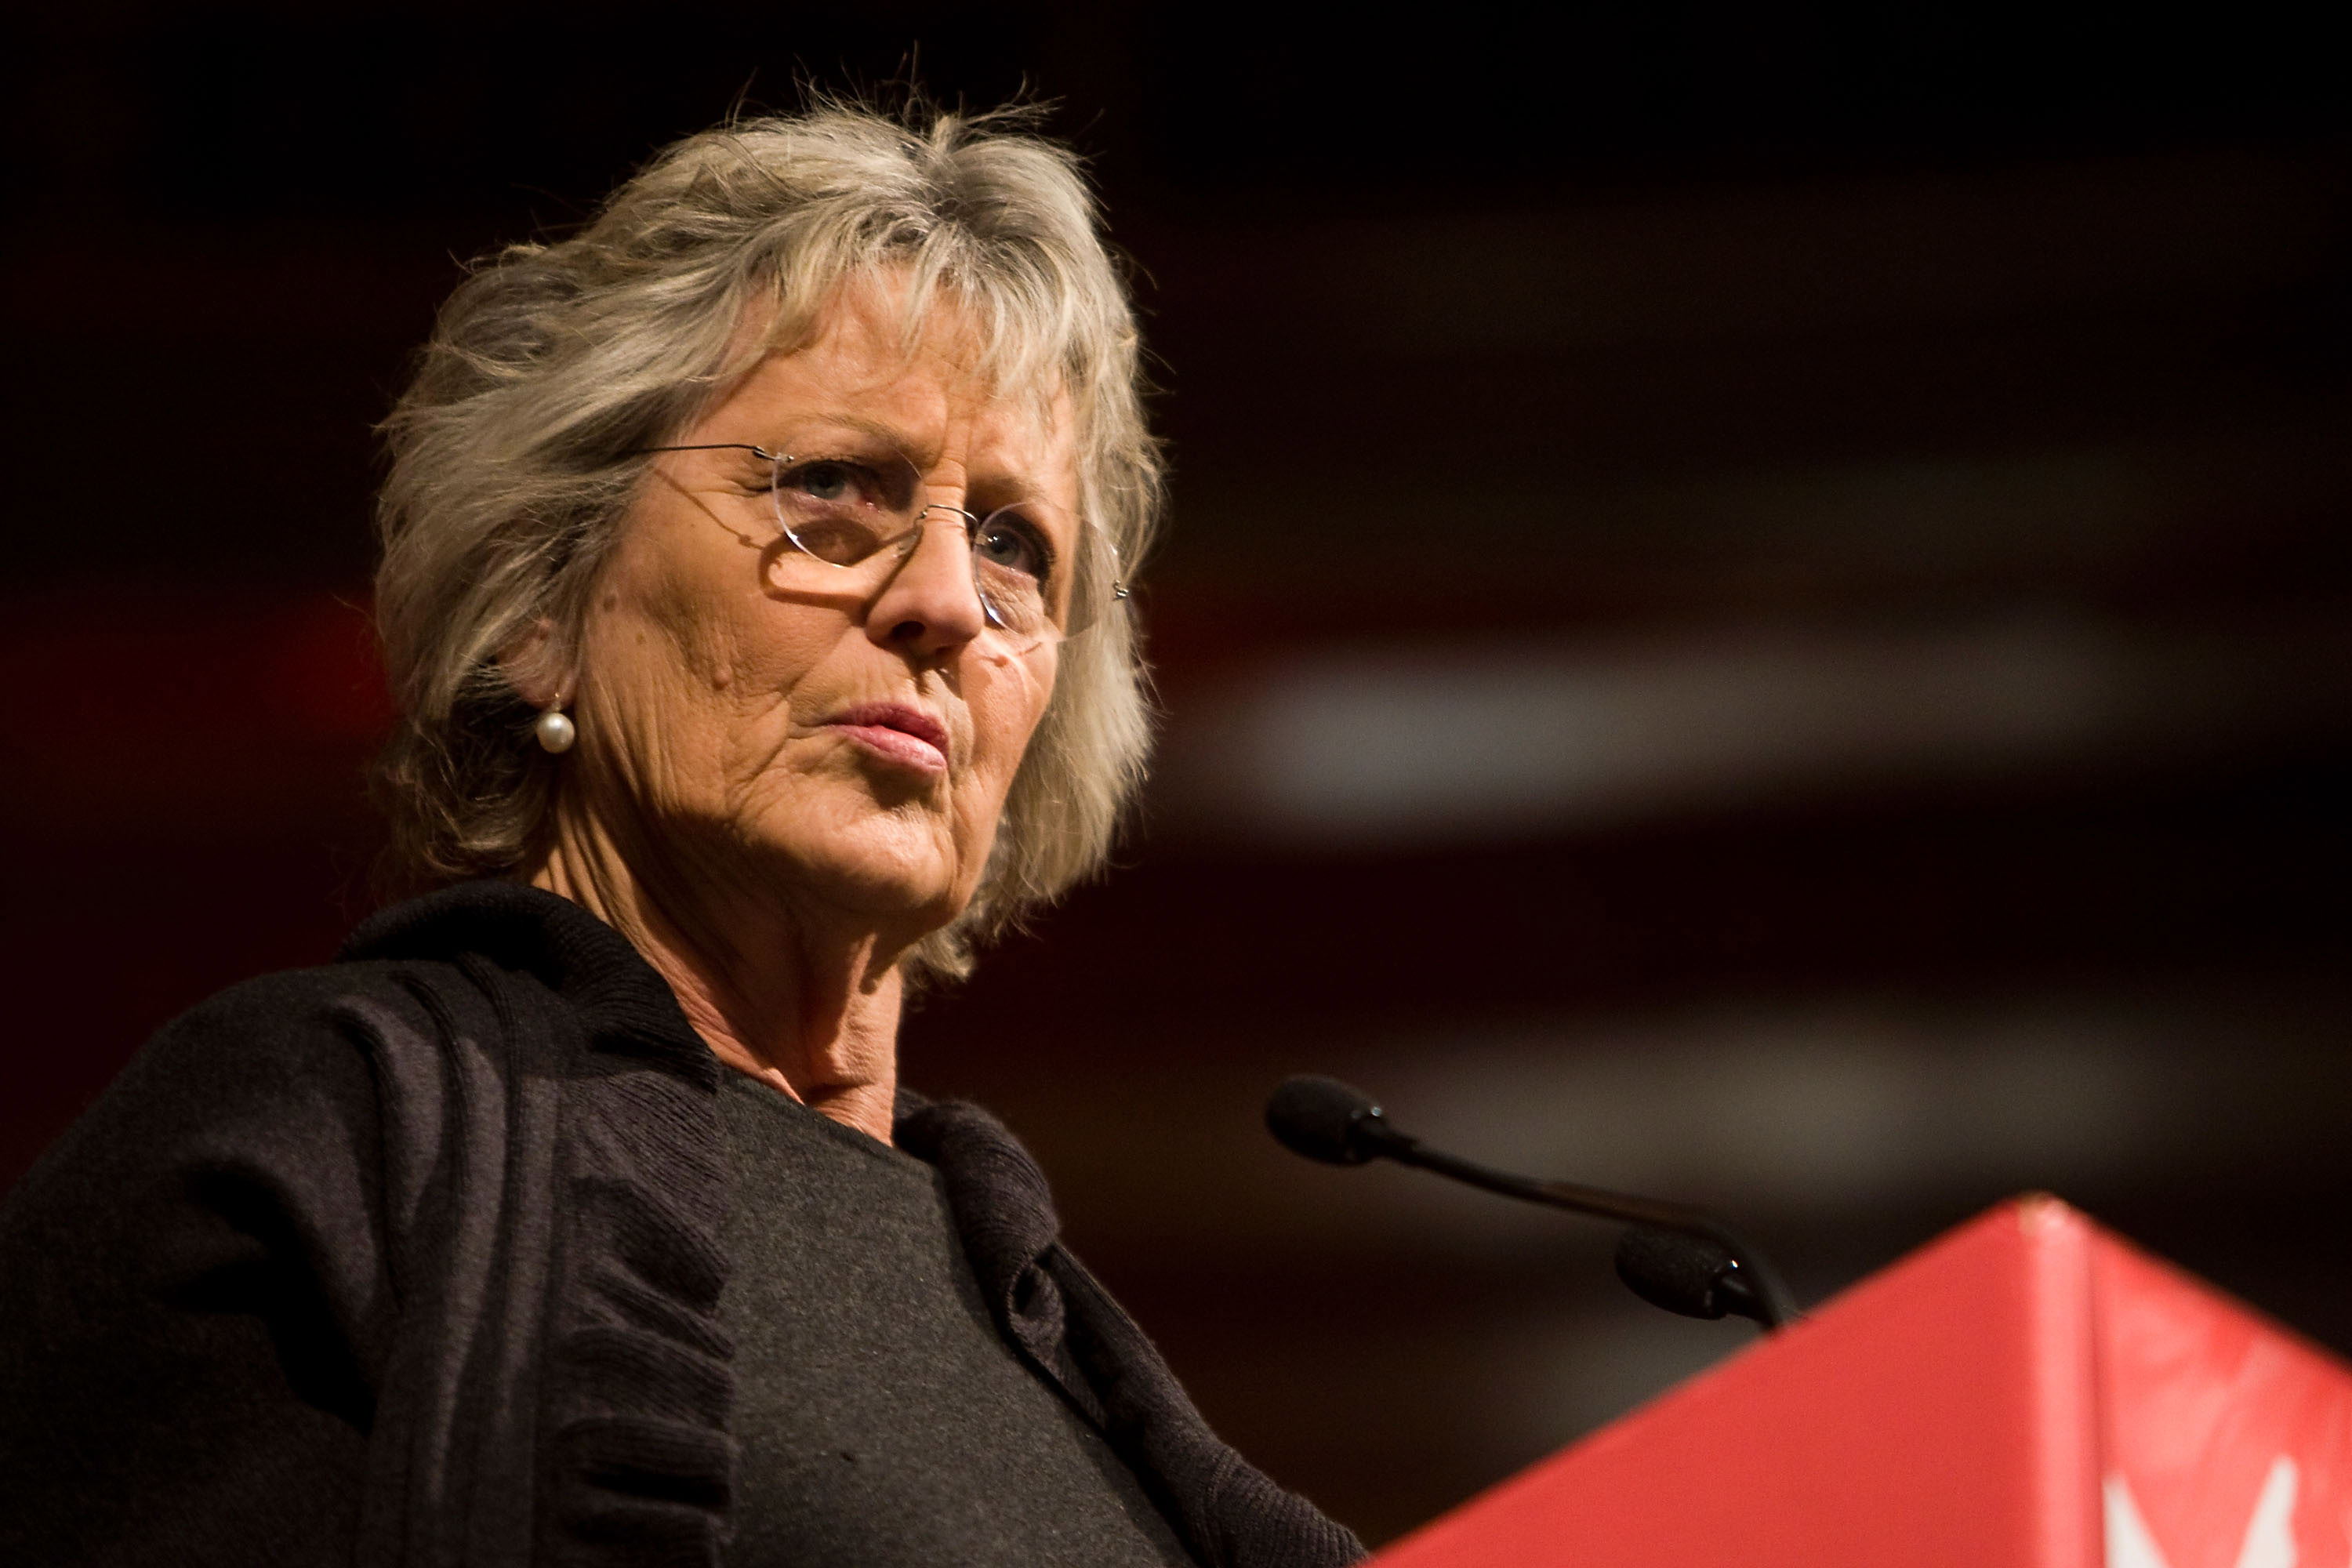 Germaine Greer speaks at The Age Book of the Year Awards as part of the opening night of the Melbourne Writers Festival on August 22, 2008 in Melbourne, Australia.